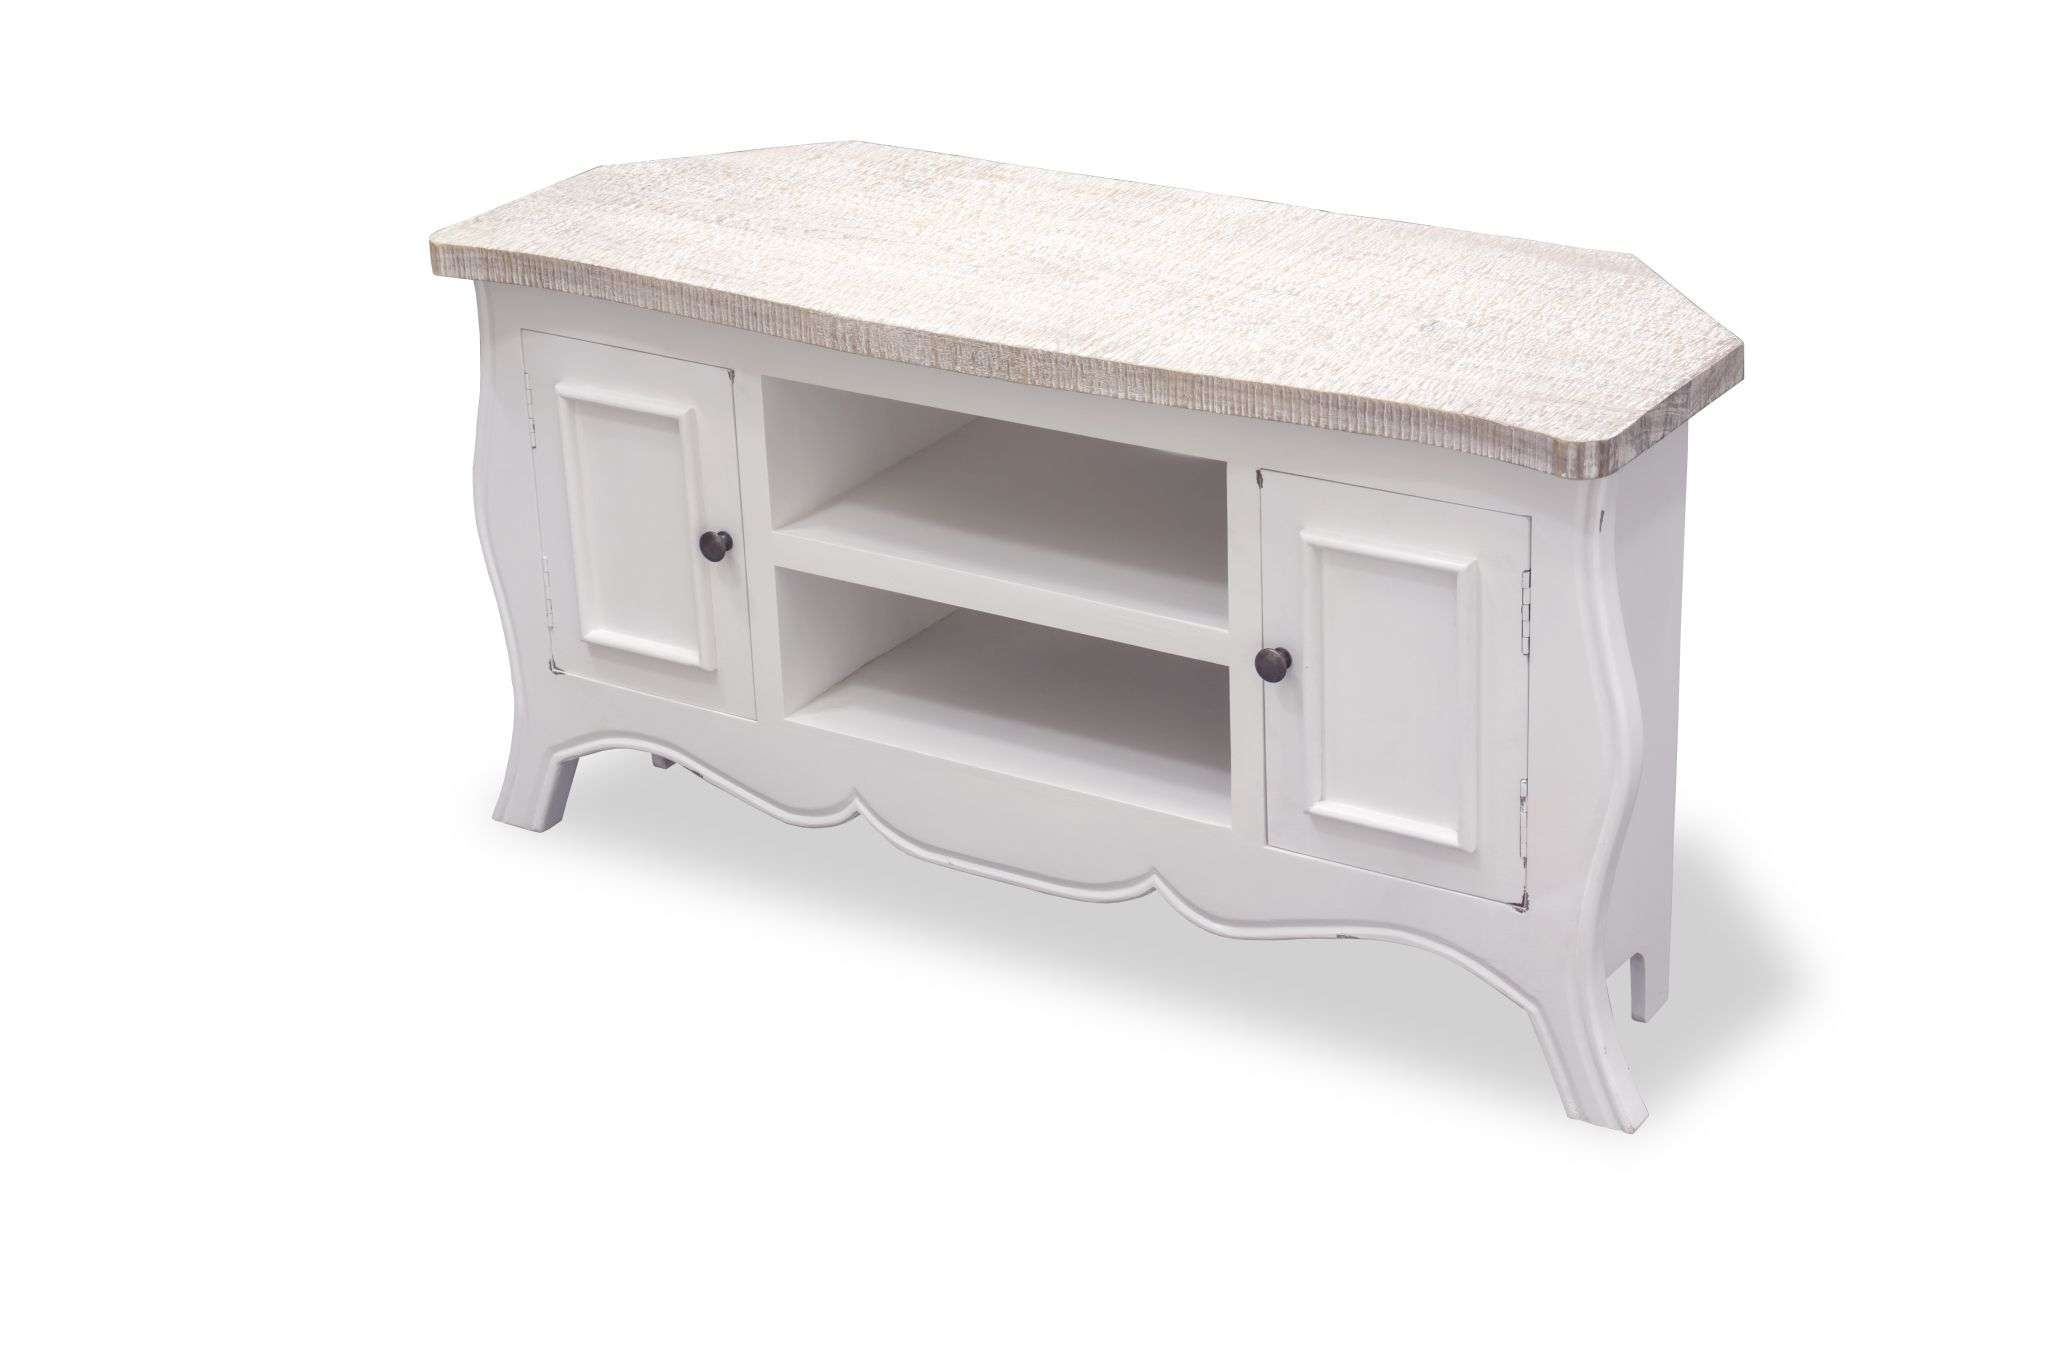 Painted Cottonwood Shabby Chic Corner Tv Cabinet 45570 P (2048 With Regard To White Corner Tv Cabinets (View 13 of 20)